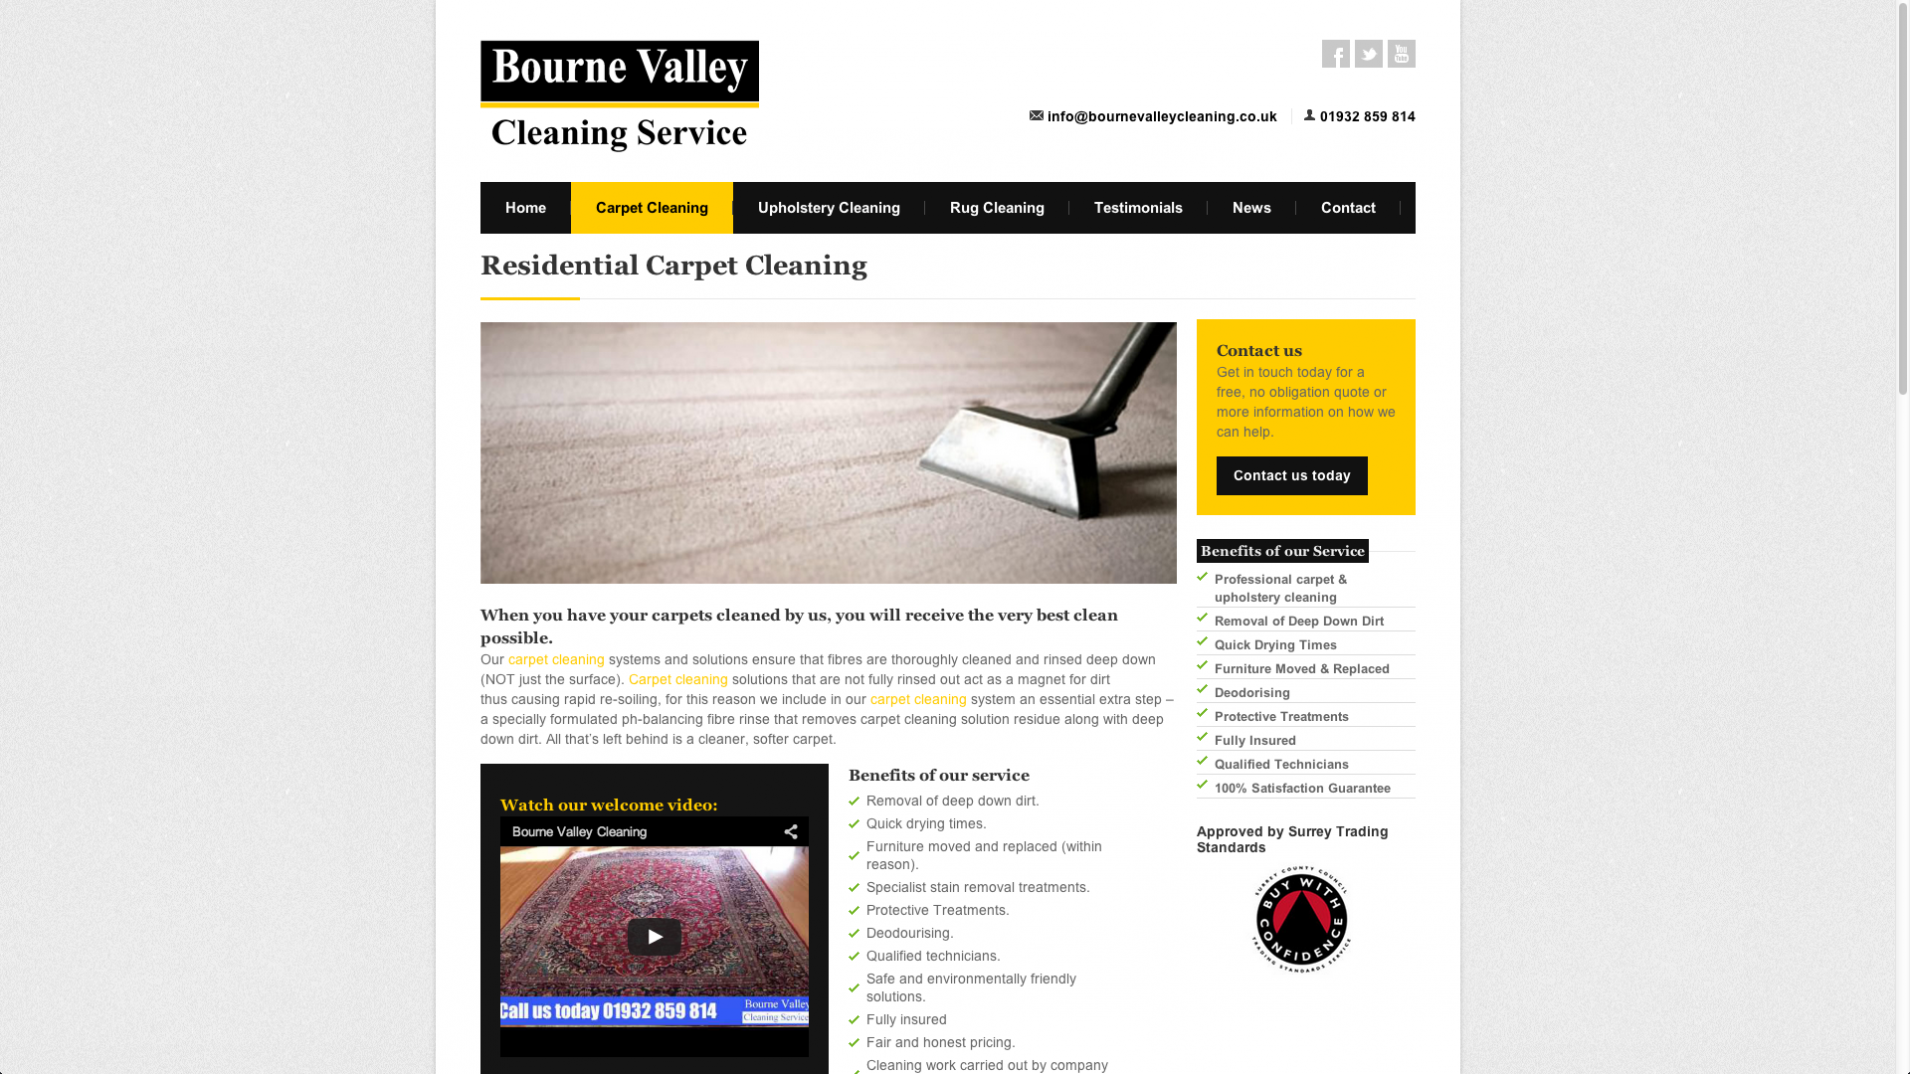 Screen Shot 2013 12 23 at 16.21.44 - Web design and marketing for Surrey based cleaning company